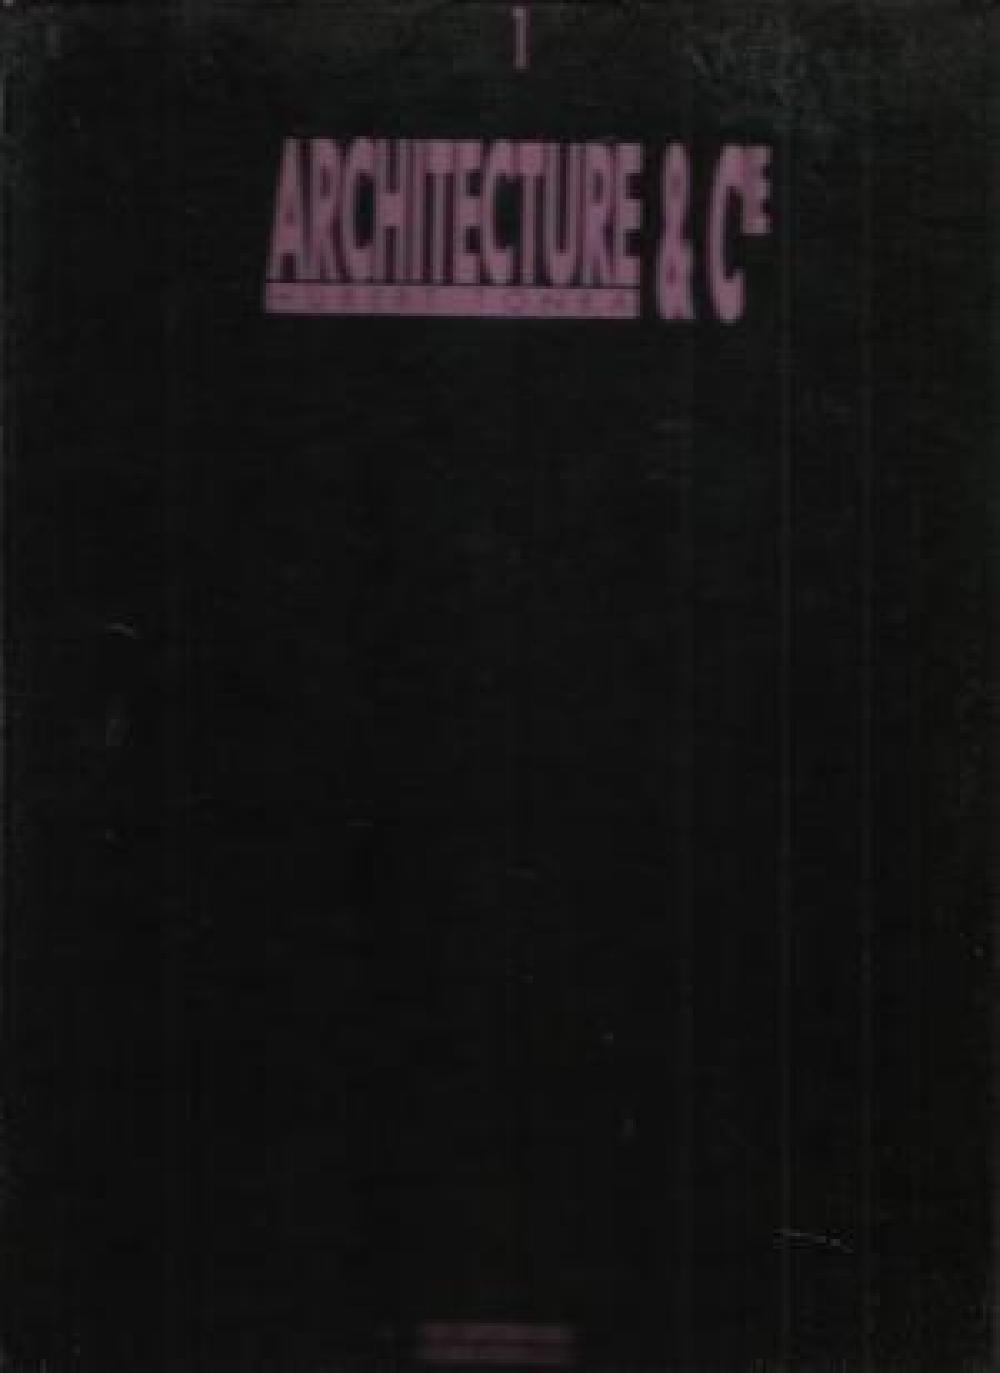 Architecture & Cie vol 2